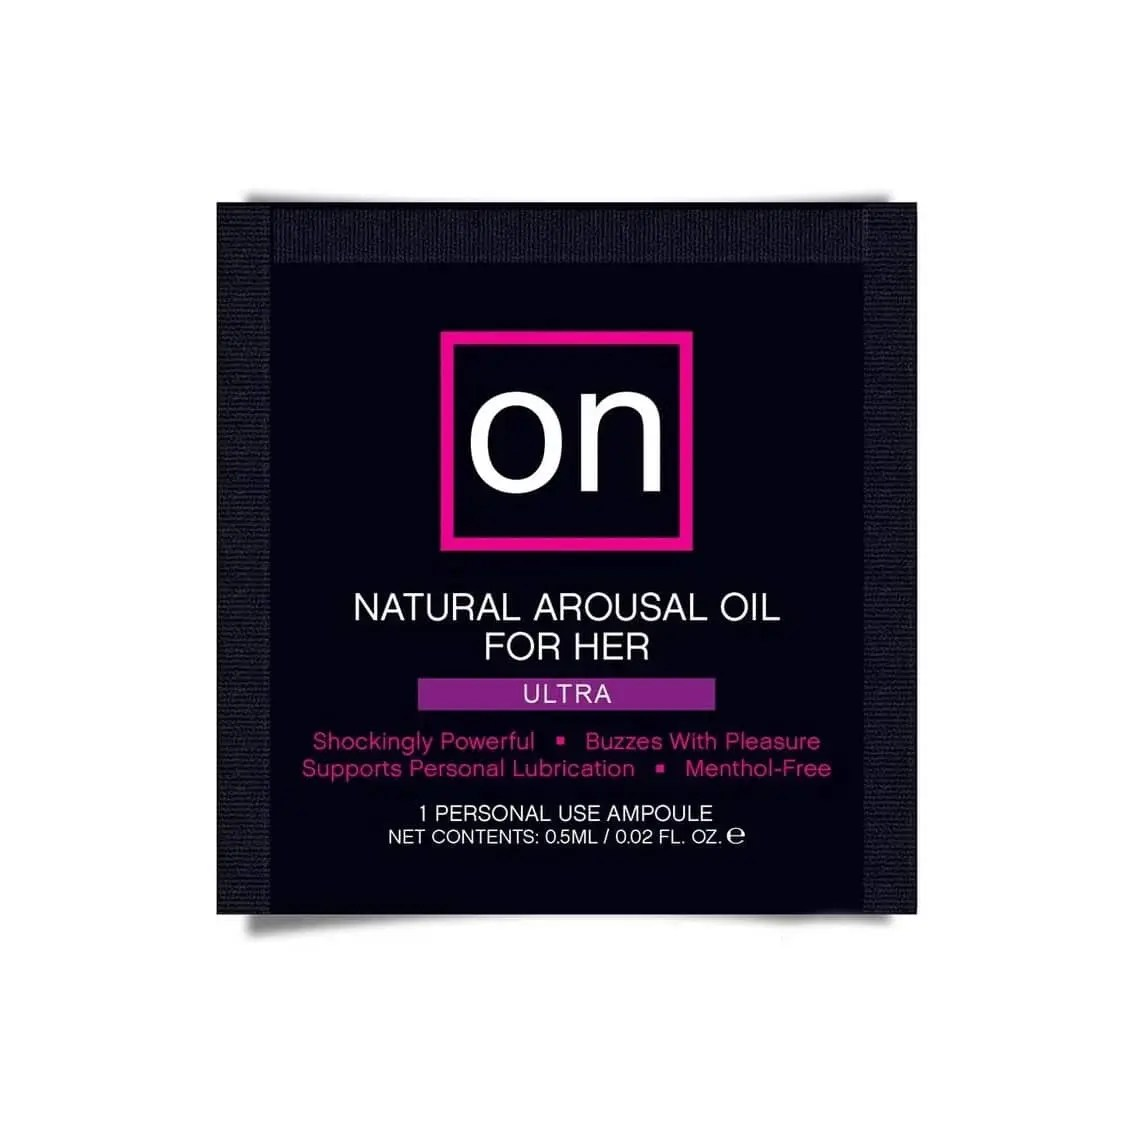 On Ultra – Natural Arousal Oil for Her